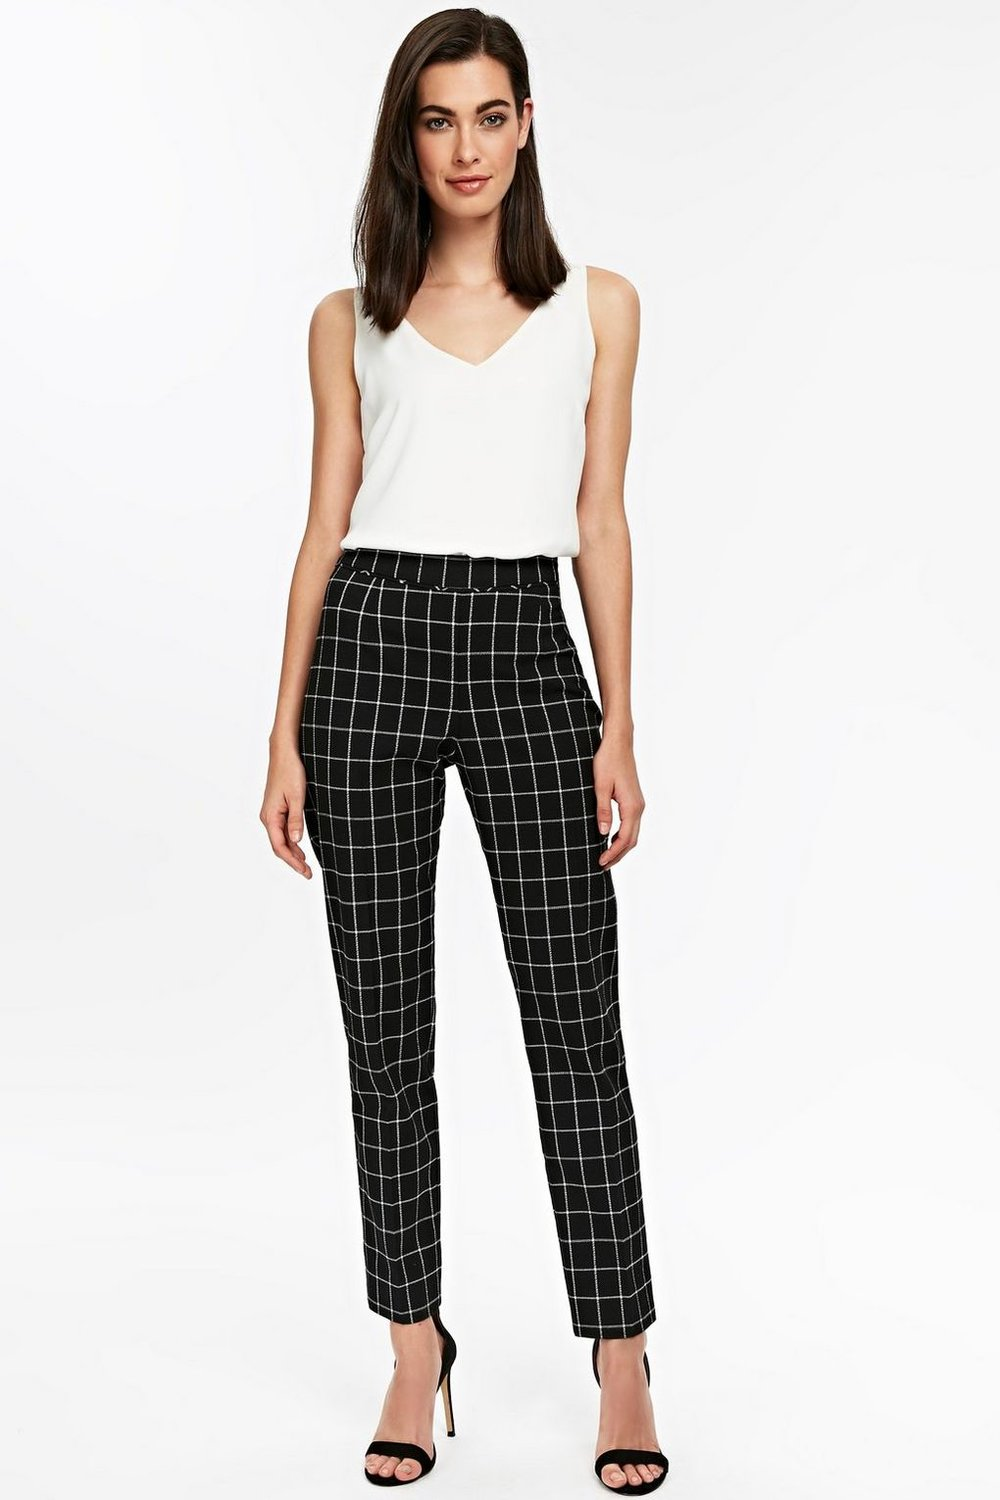 Monochrome Checked Slim Leg Trouser, £35